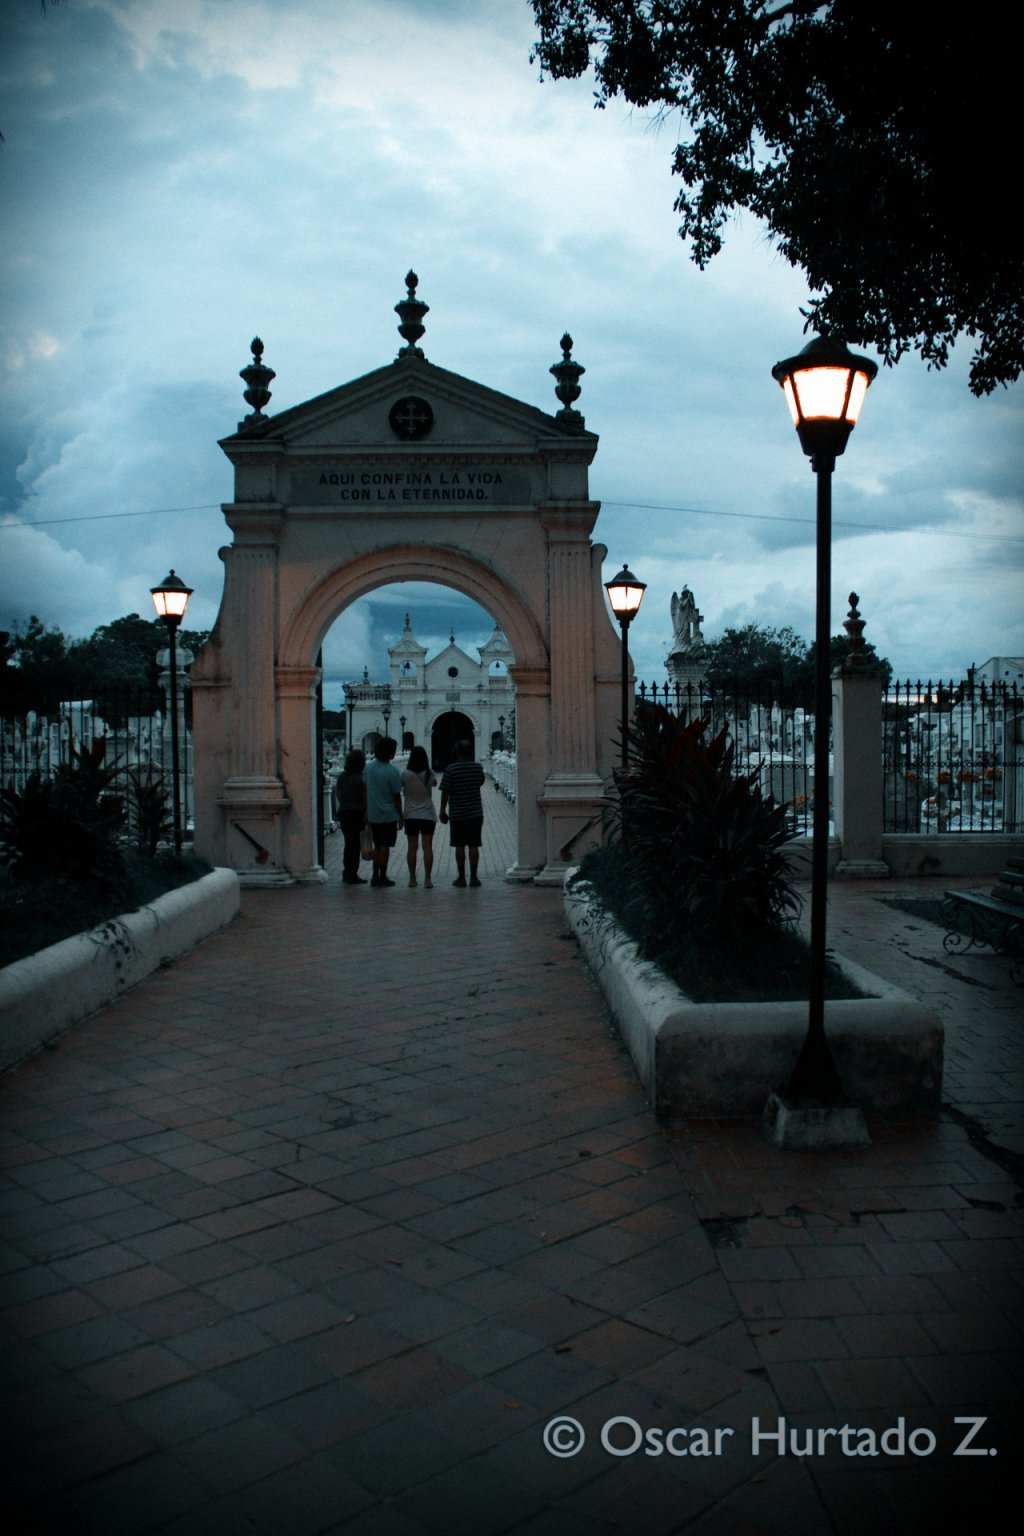 The picturesque and historical Cemetery of Mompox is considered to be the most beautiful in the country of Colombia